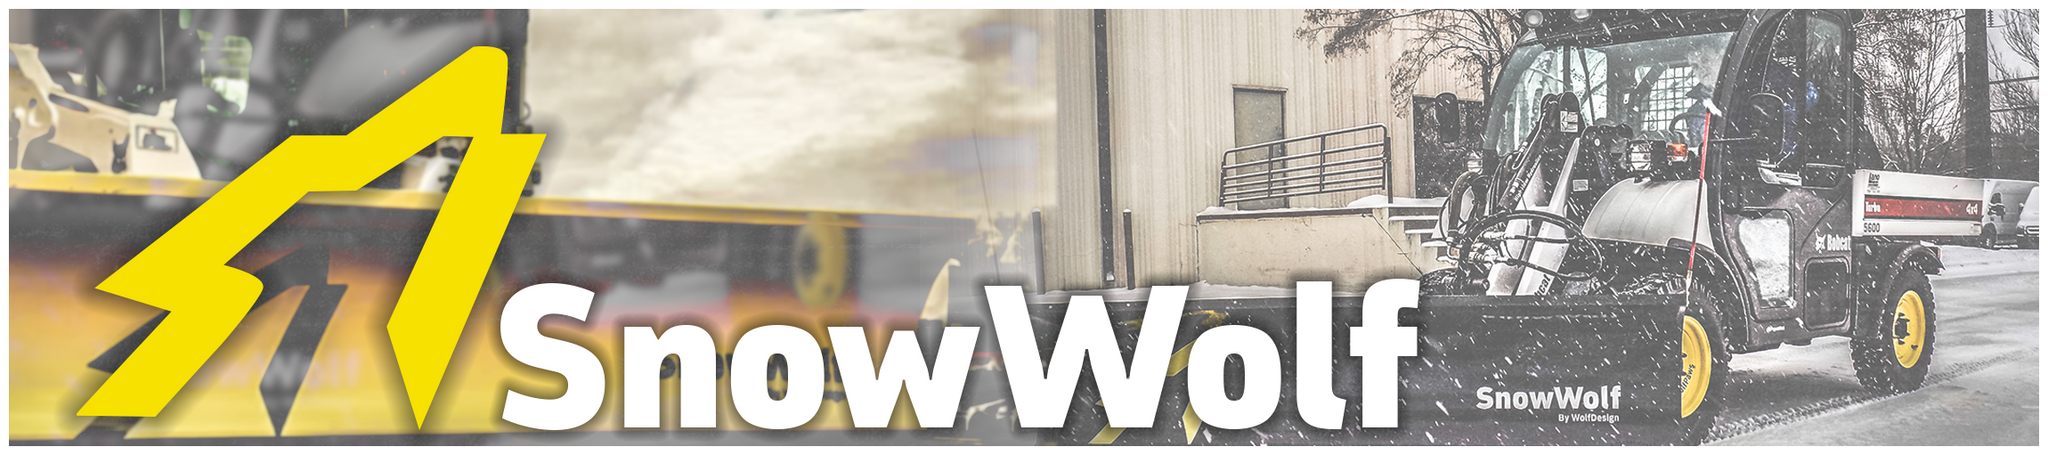 SnowWolf Attachments | Snow Removal Attachments for Skid Steer Loaders